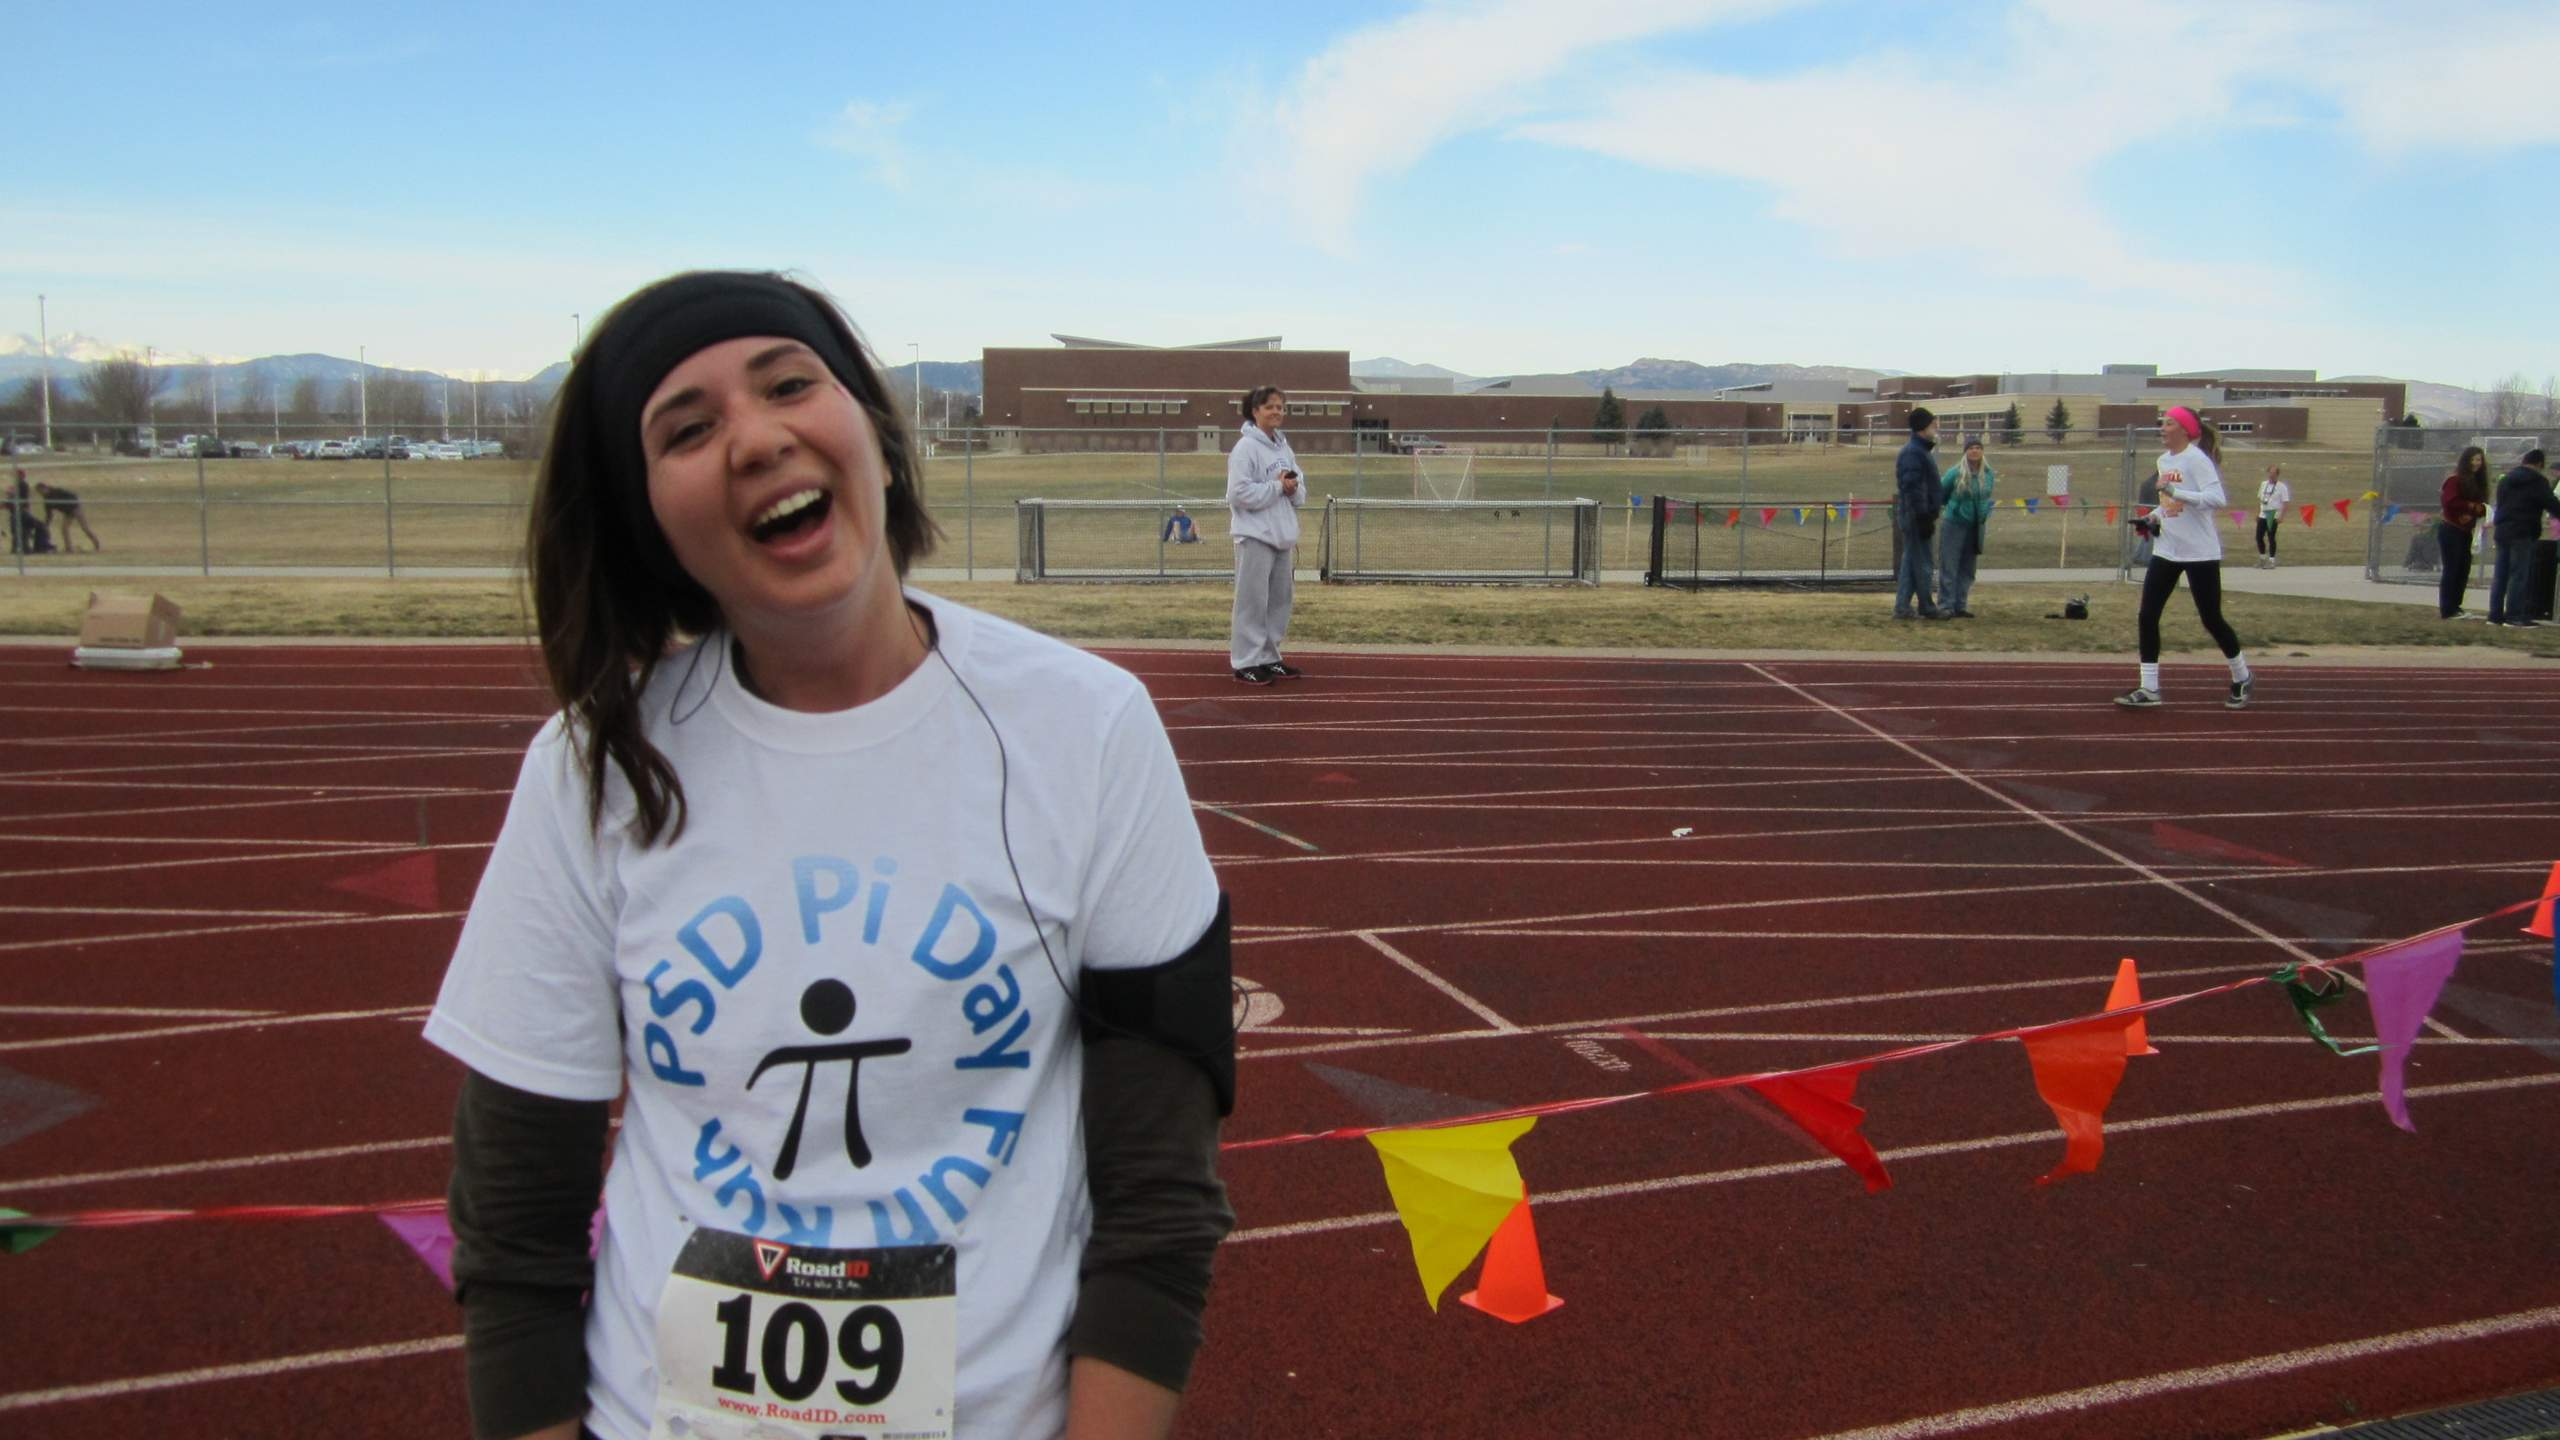 Diana after a great effort at the PSD Pi Day Fun Run 5k.